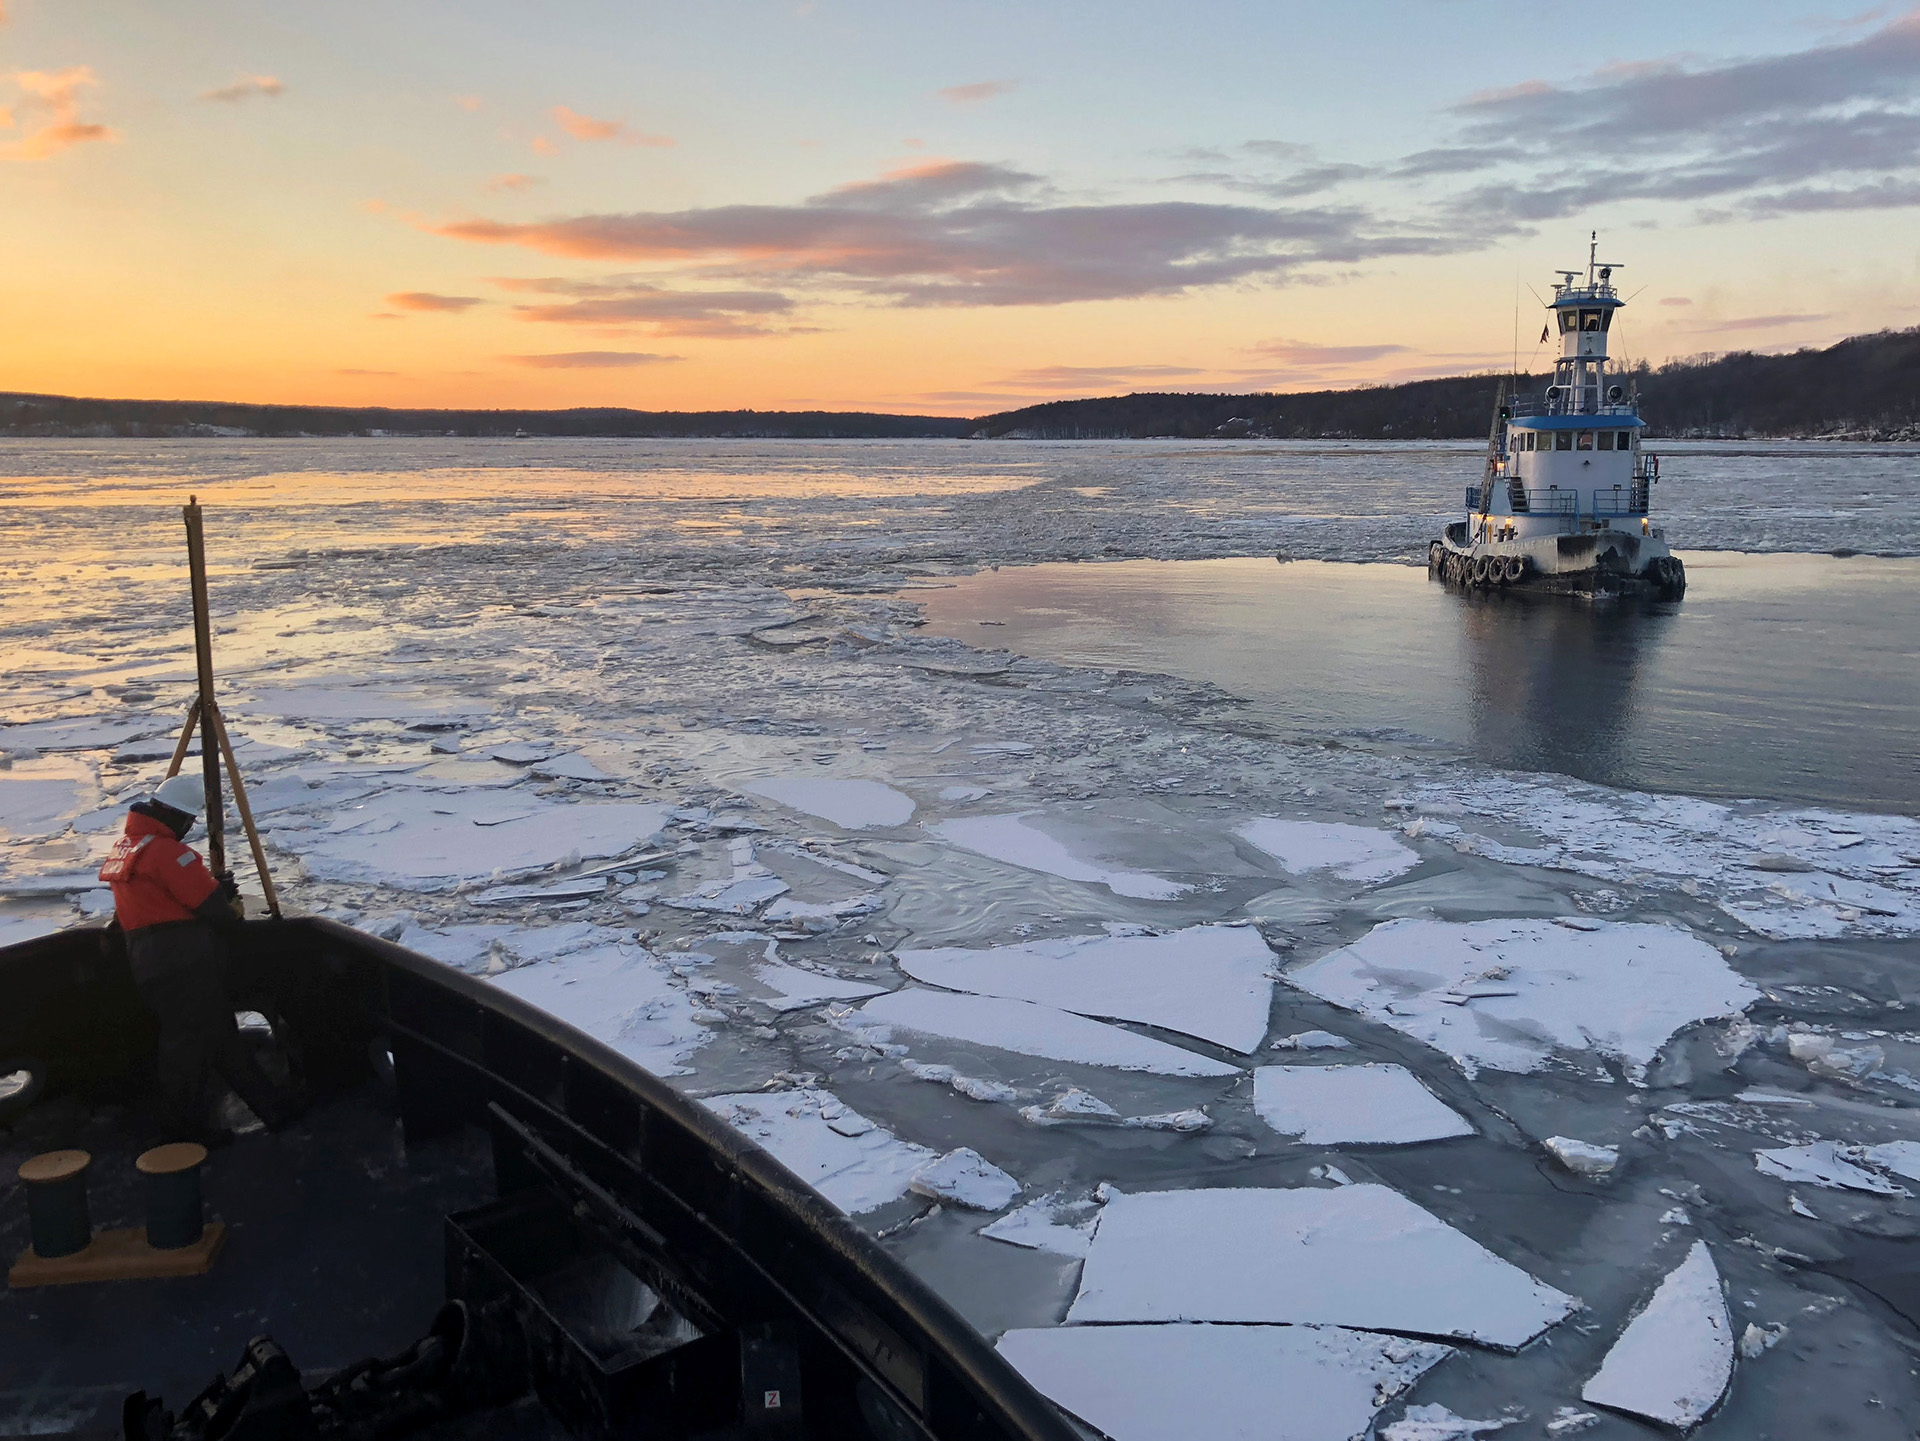 La guardia costera ayuda a romper el hielo en el río Hudson, cerca de Kingston, Nueva York (U.S. Coast Guard photo/Handout via REUTERS)